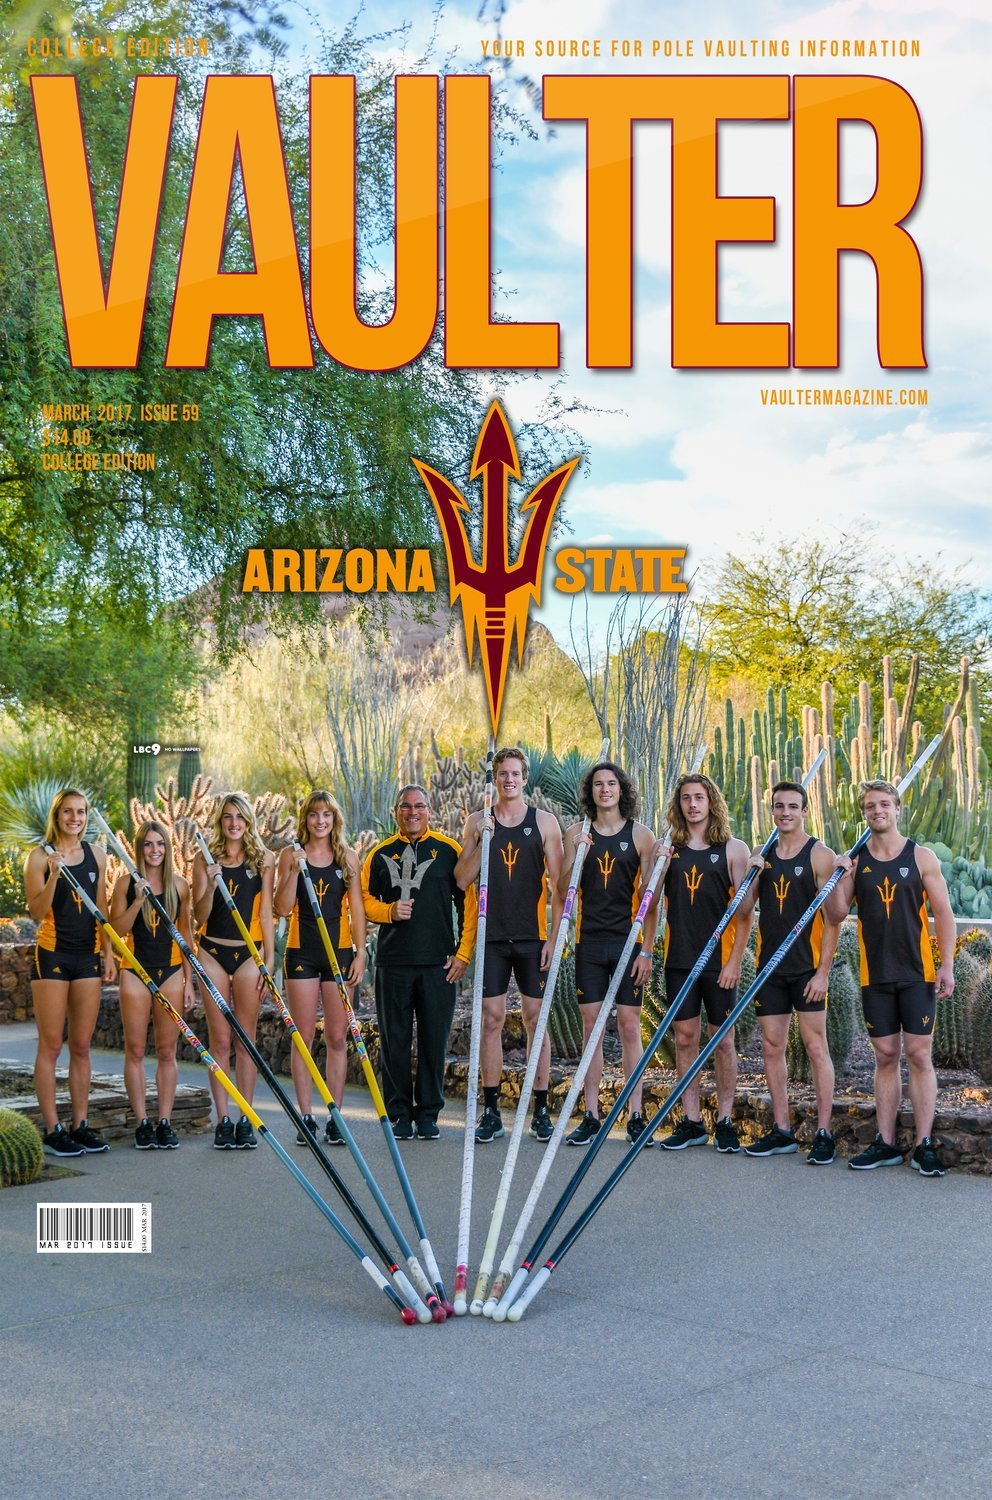 Arizona State University Cover of Vaulter Magazine March 2017